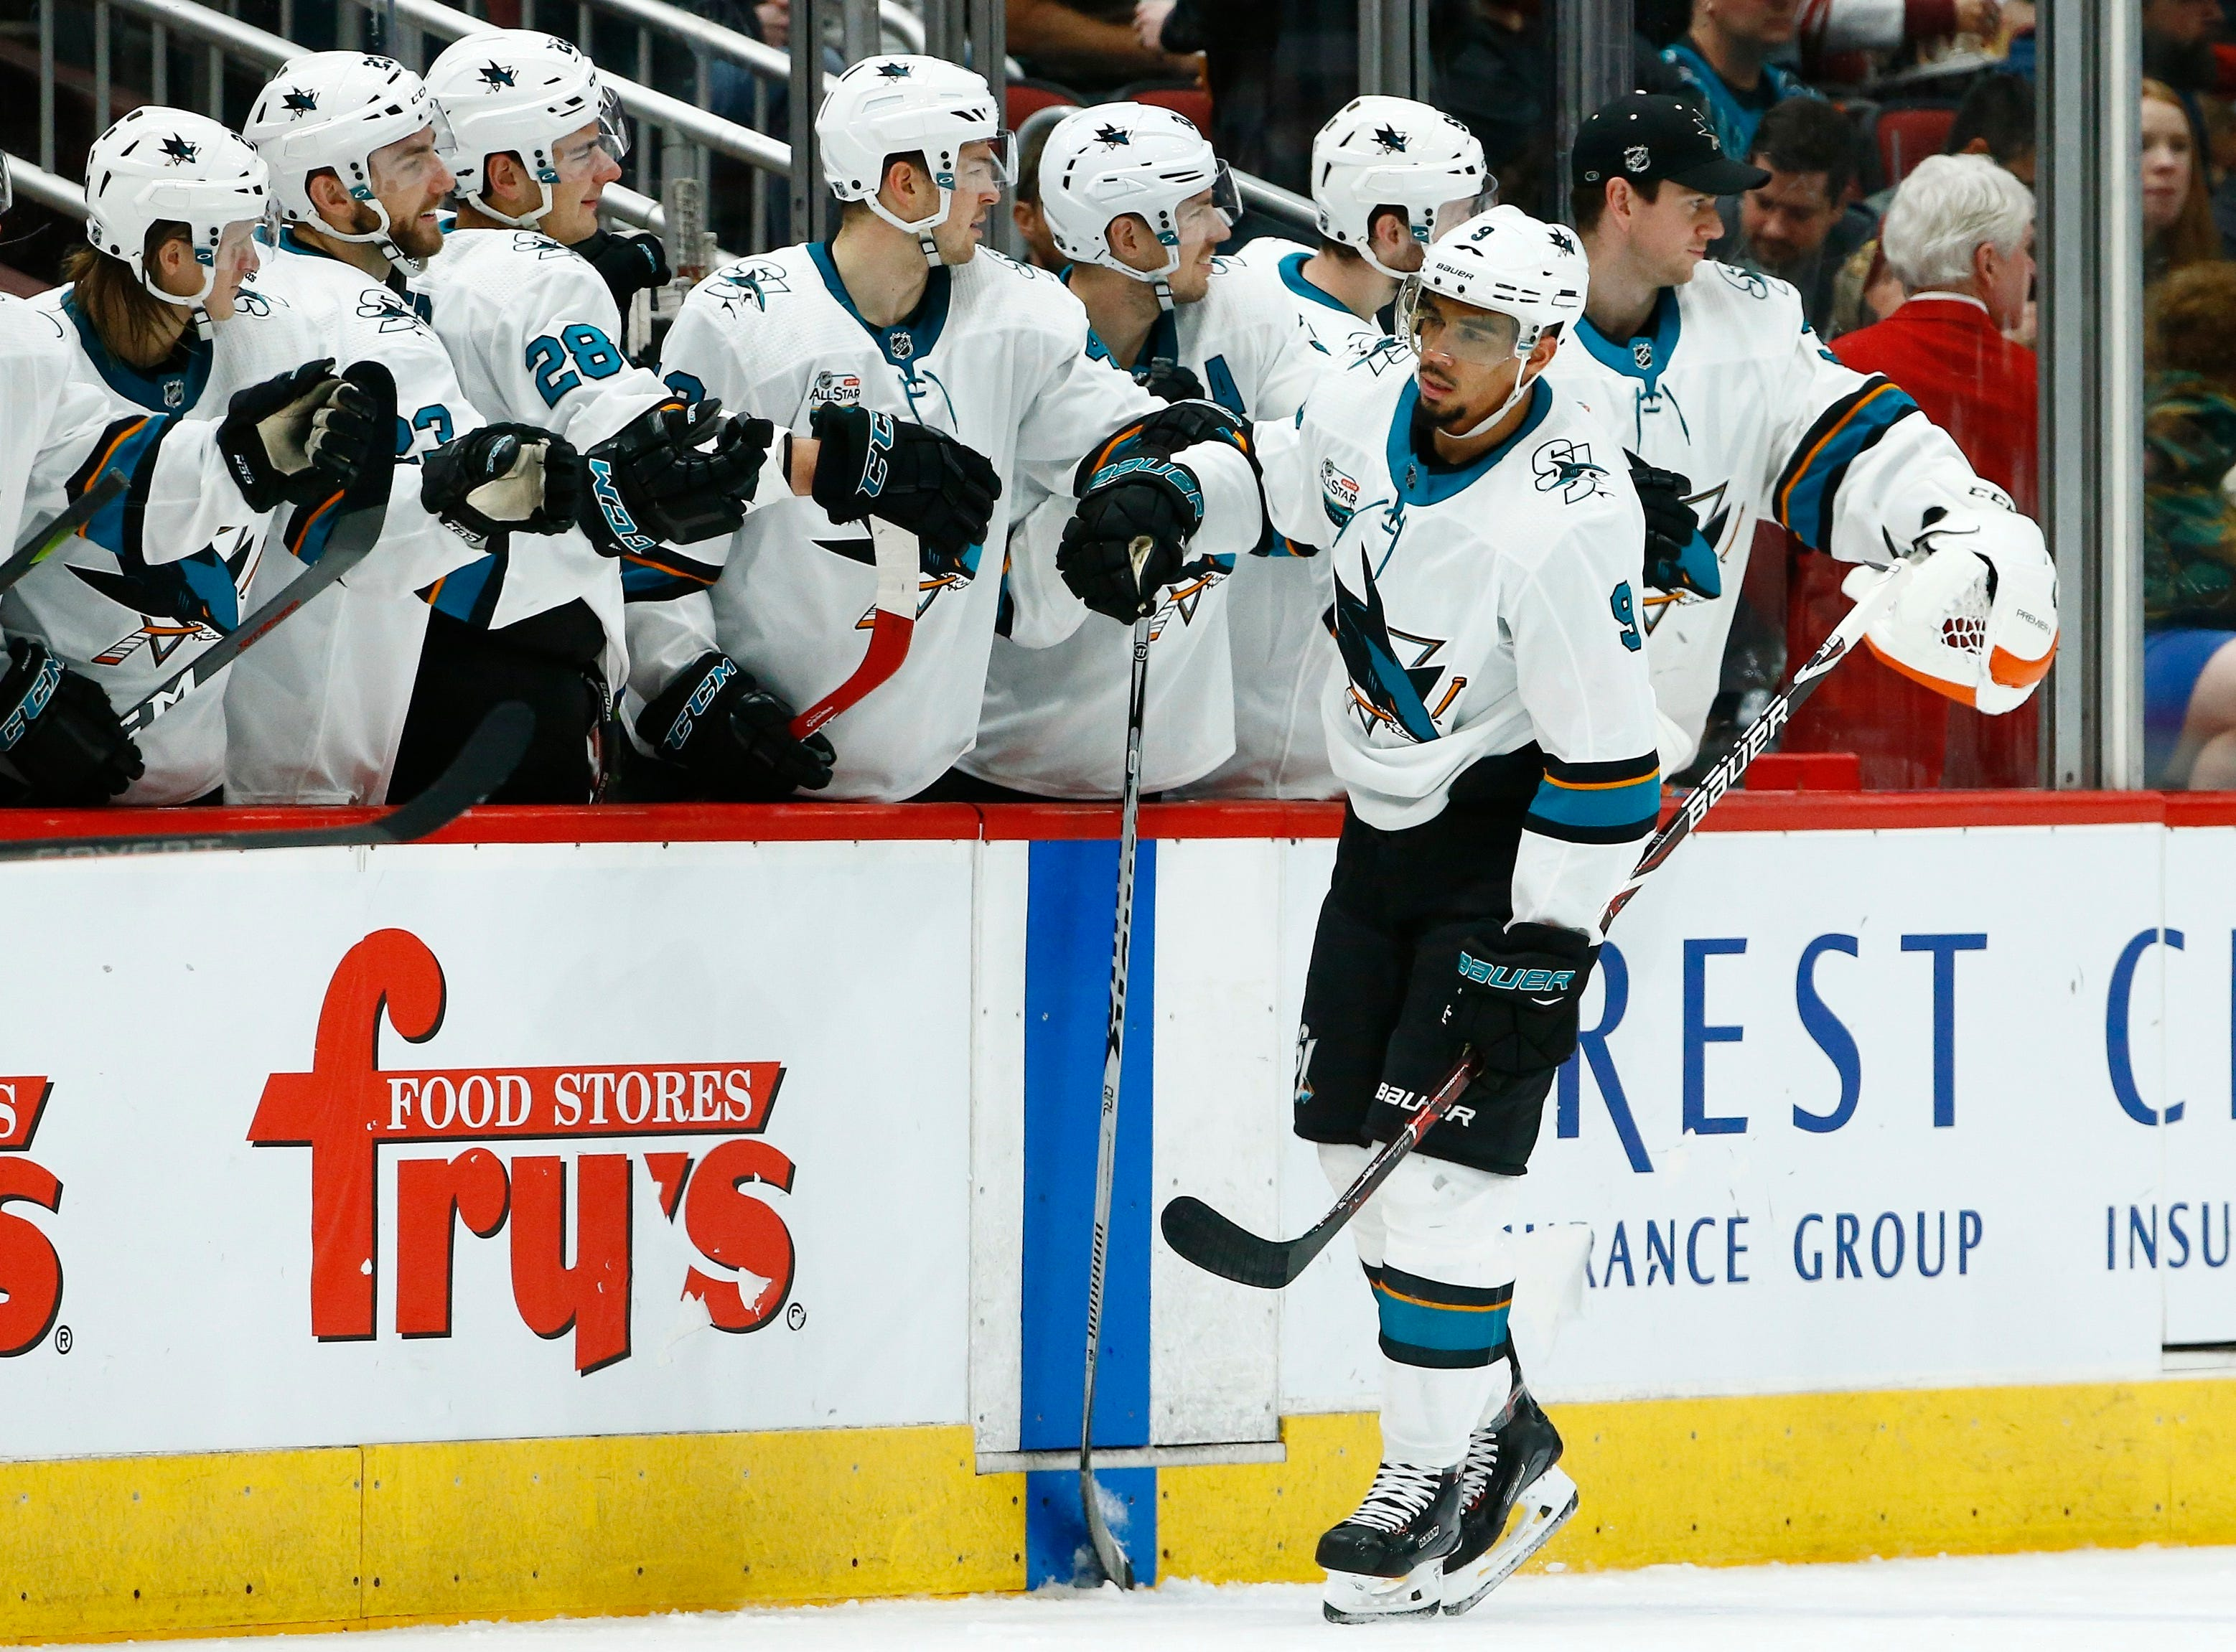 San Jose Sharks left wing Evander Kane (9) celebrates his goal against the Arizona Coyotes during the second period of an NHL hockey game, Saturday, Dec. 8, 2018, in Phoenix. (AP Photo/Ross D. Franklin)